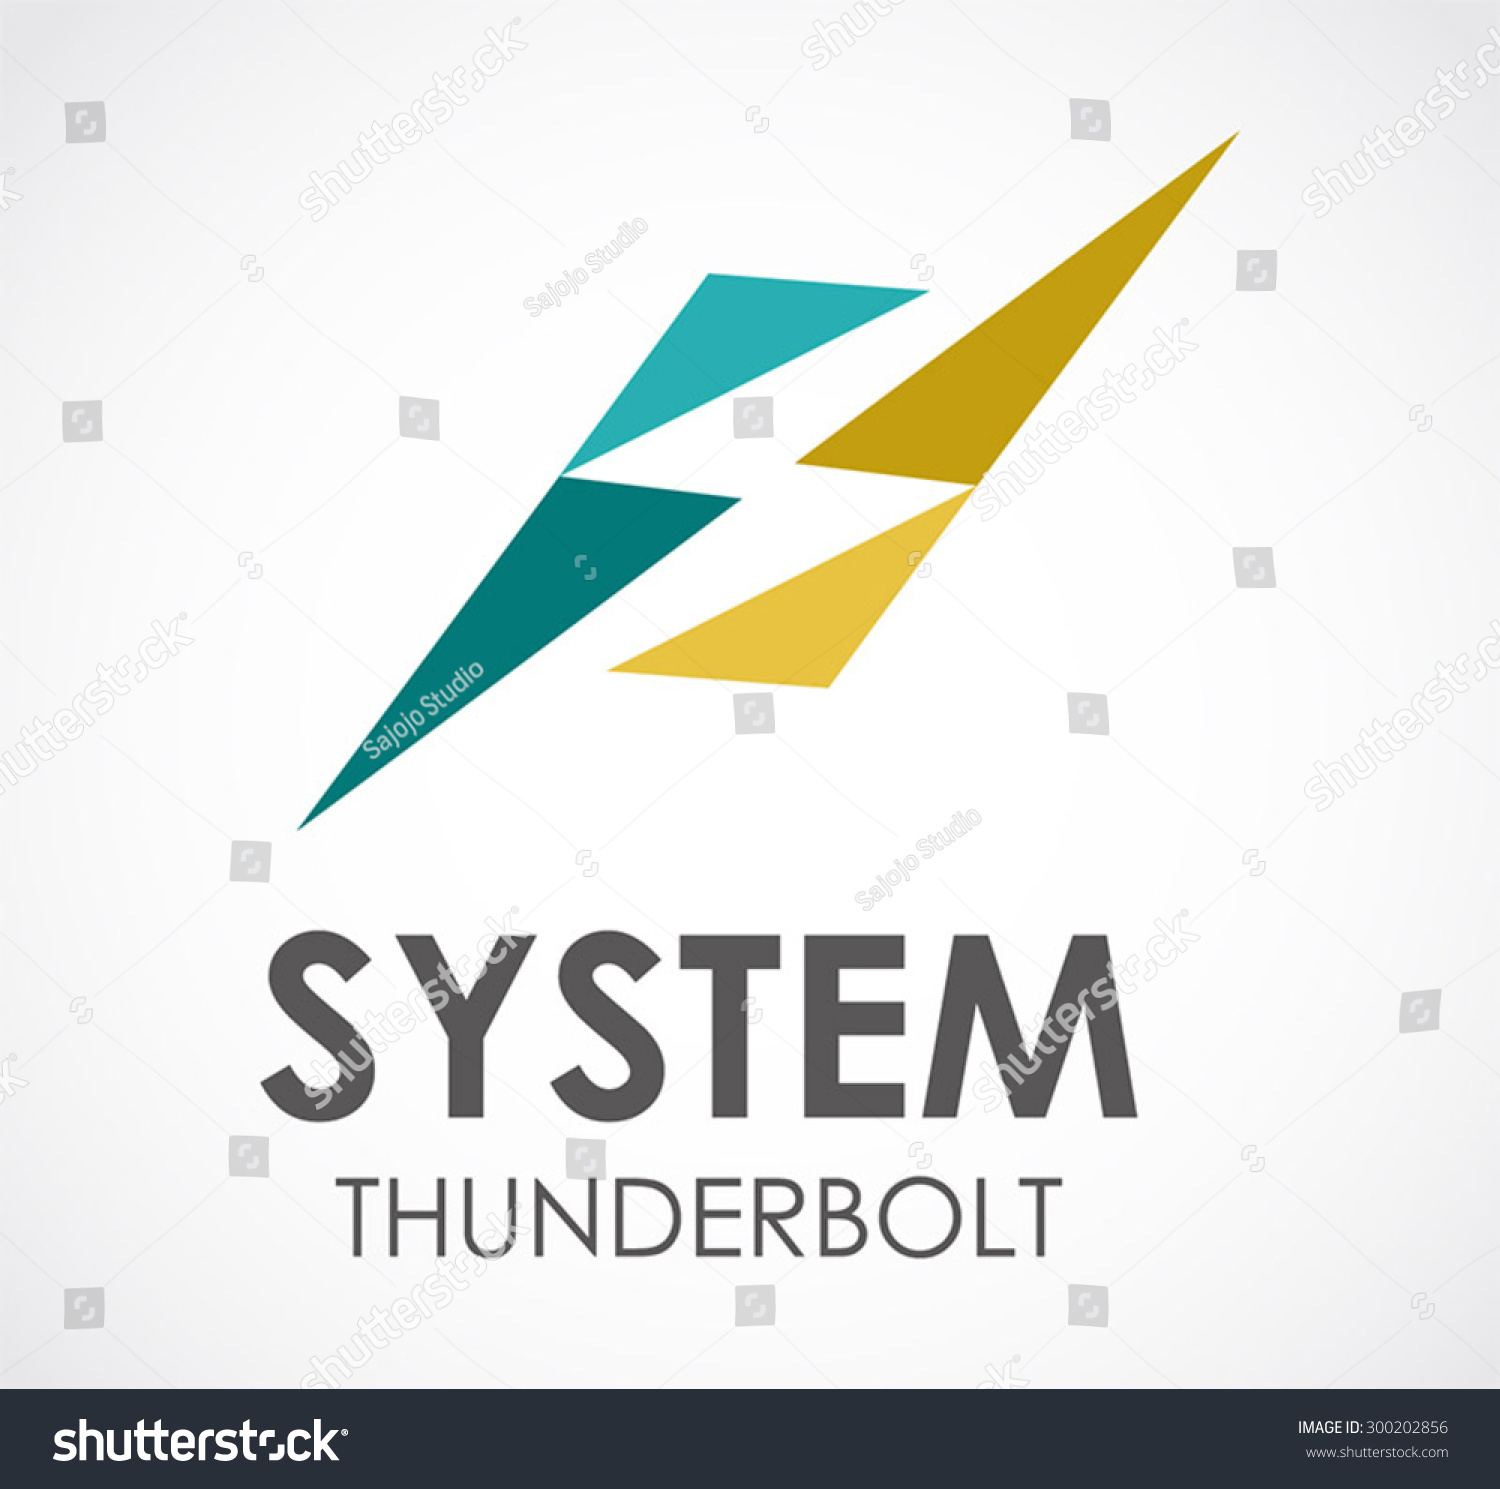 System Thunderbolt Electricity Abstract Vector Logo Stock Vector ...